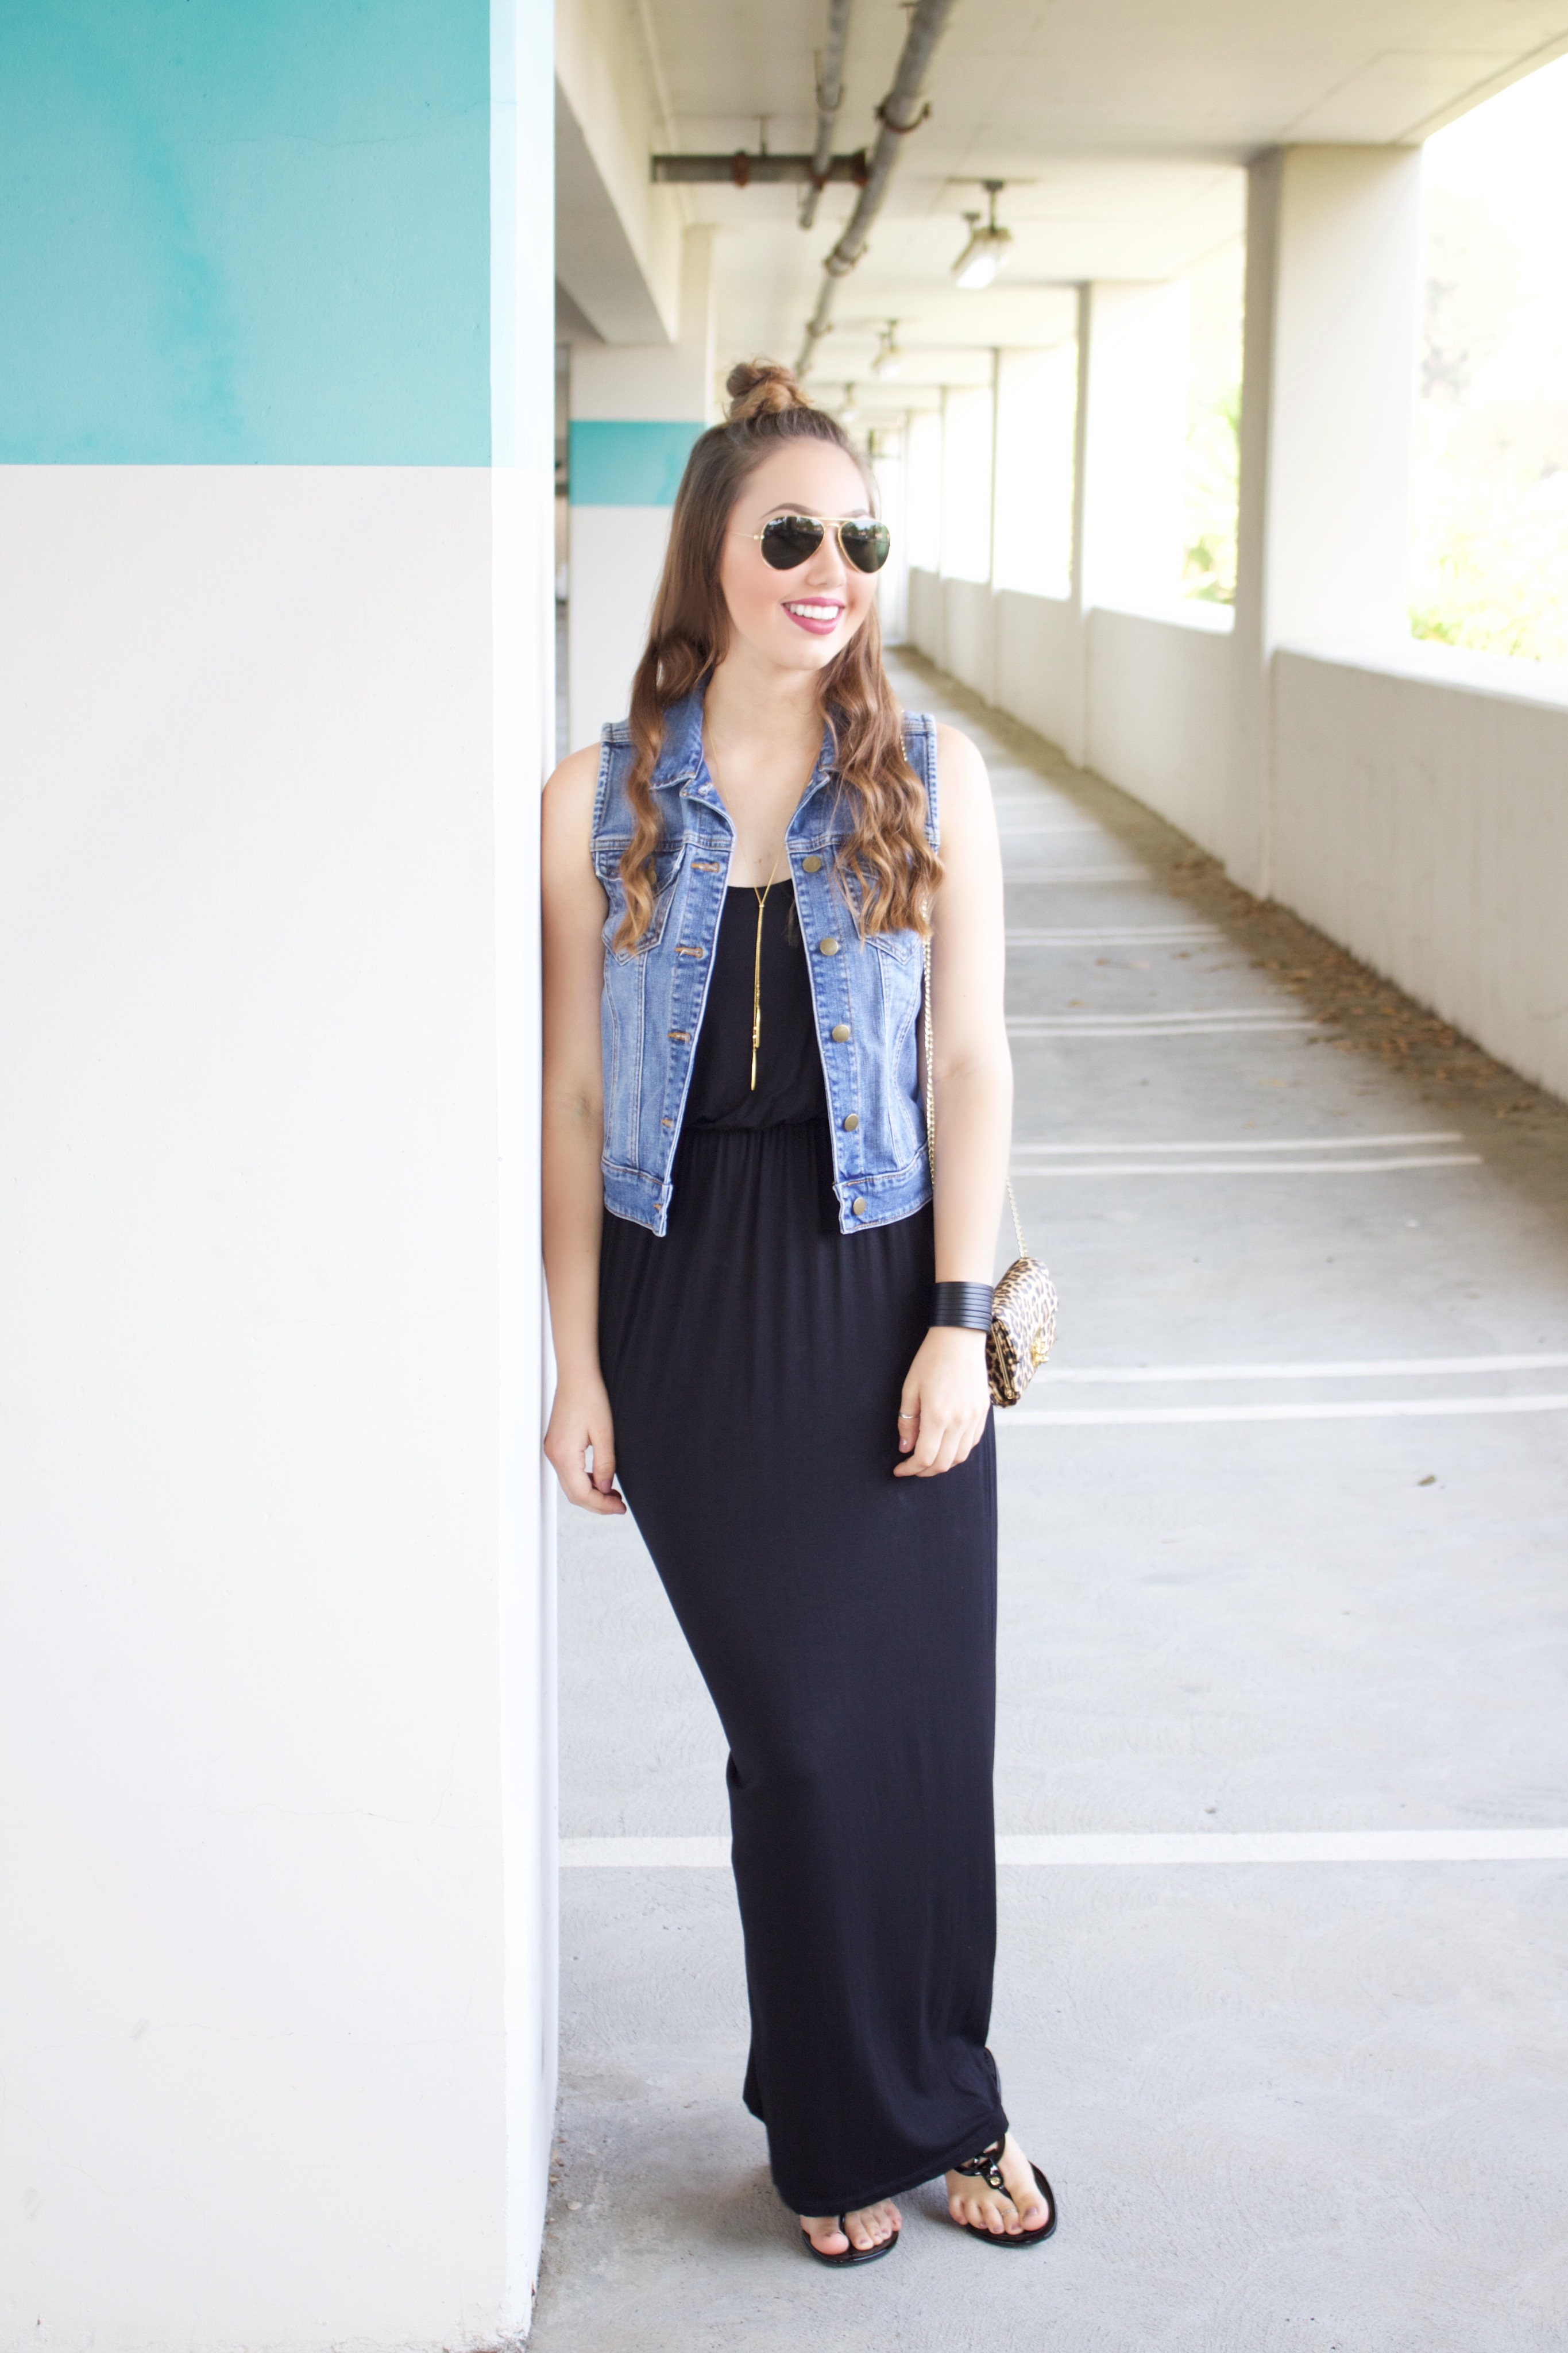 img_5174How to Style a Maxi Dress - My Styled LifeA